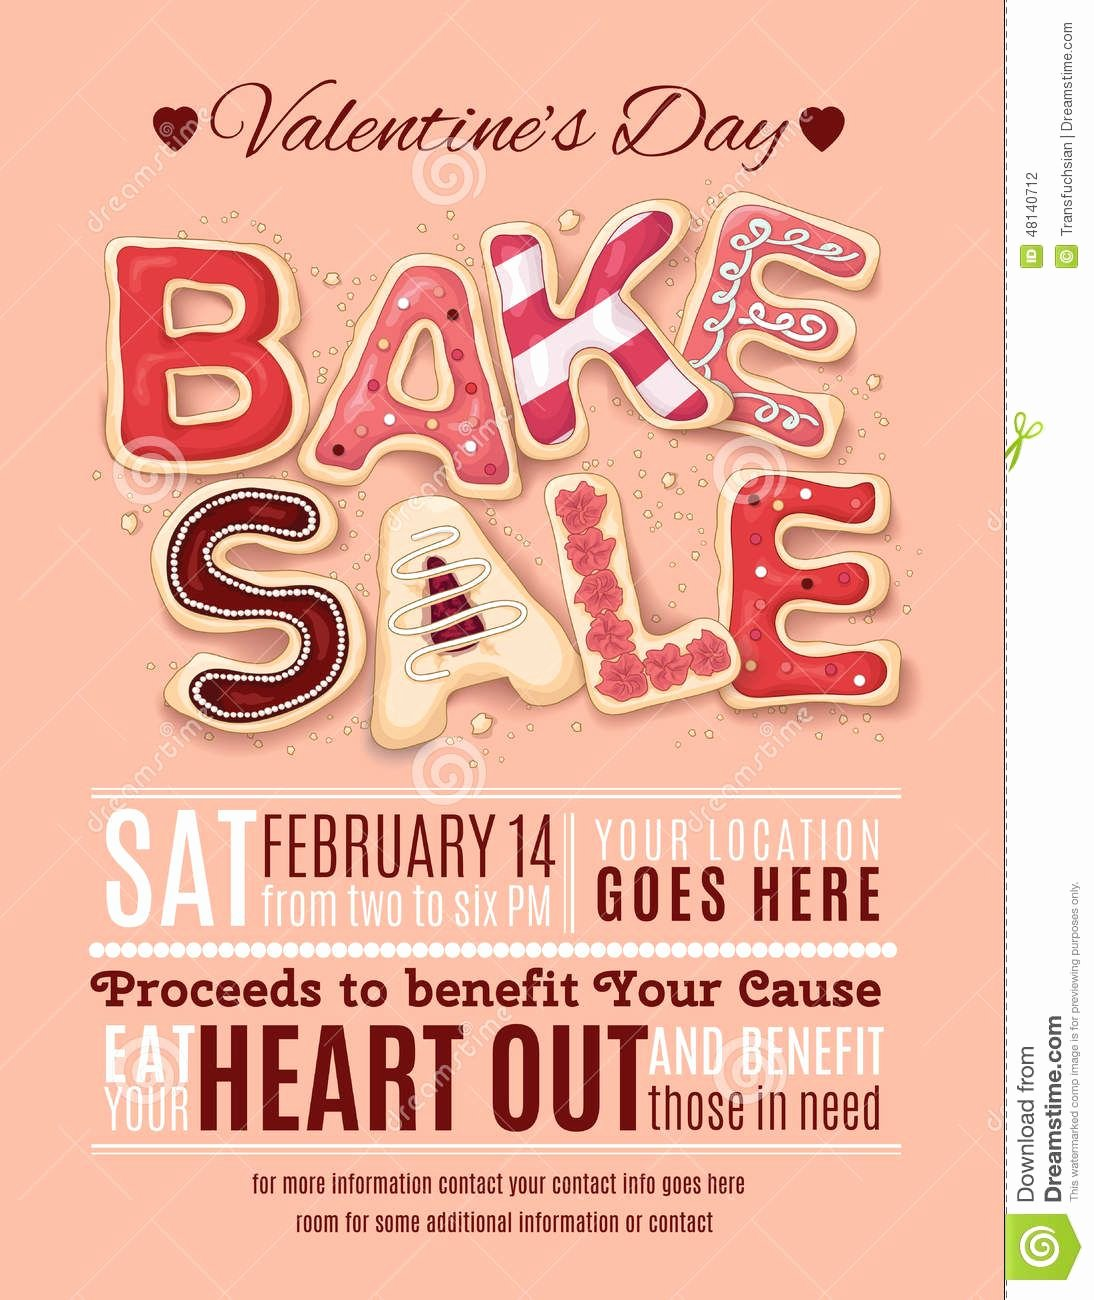 Free Bake Sale Template Unique Valentines Day Bake Sale Flyer Template Download From